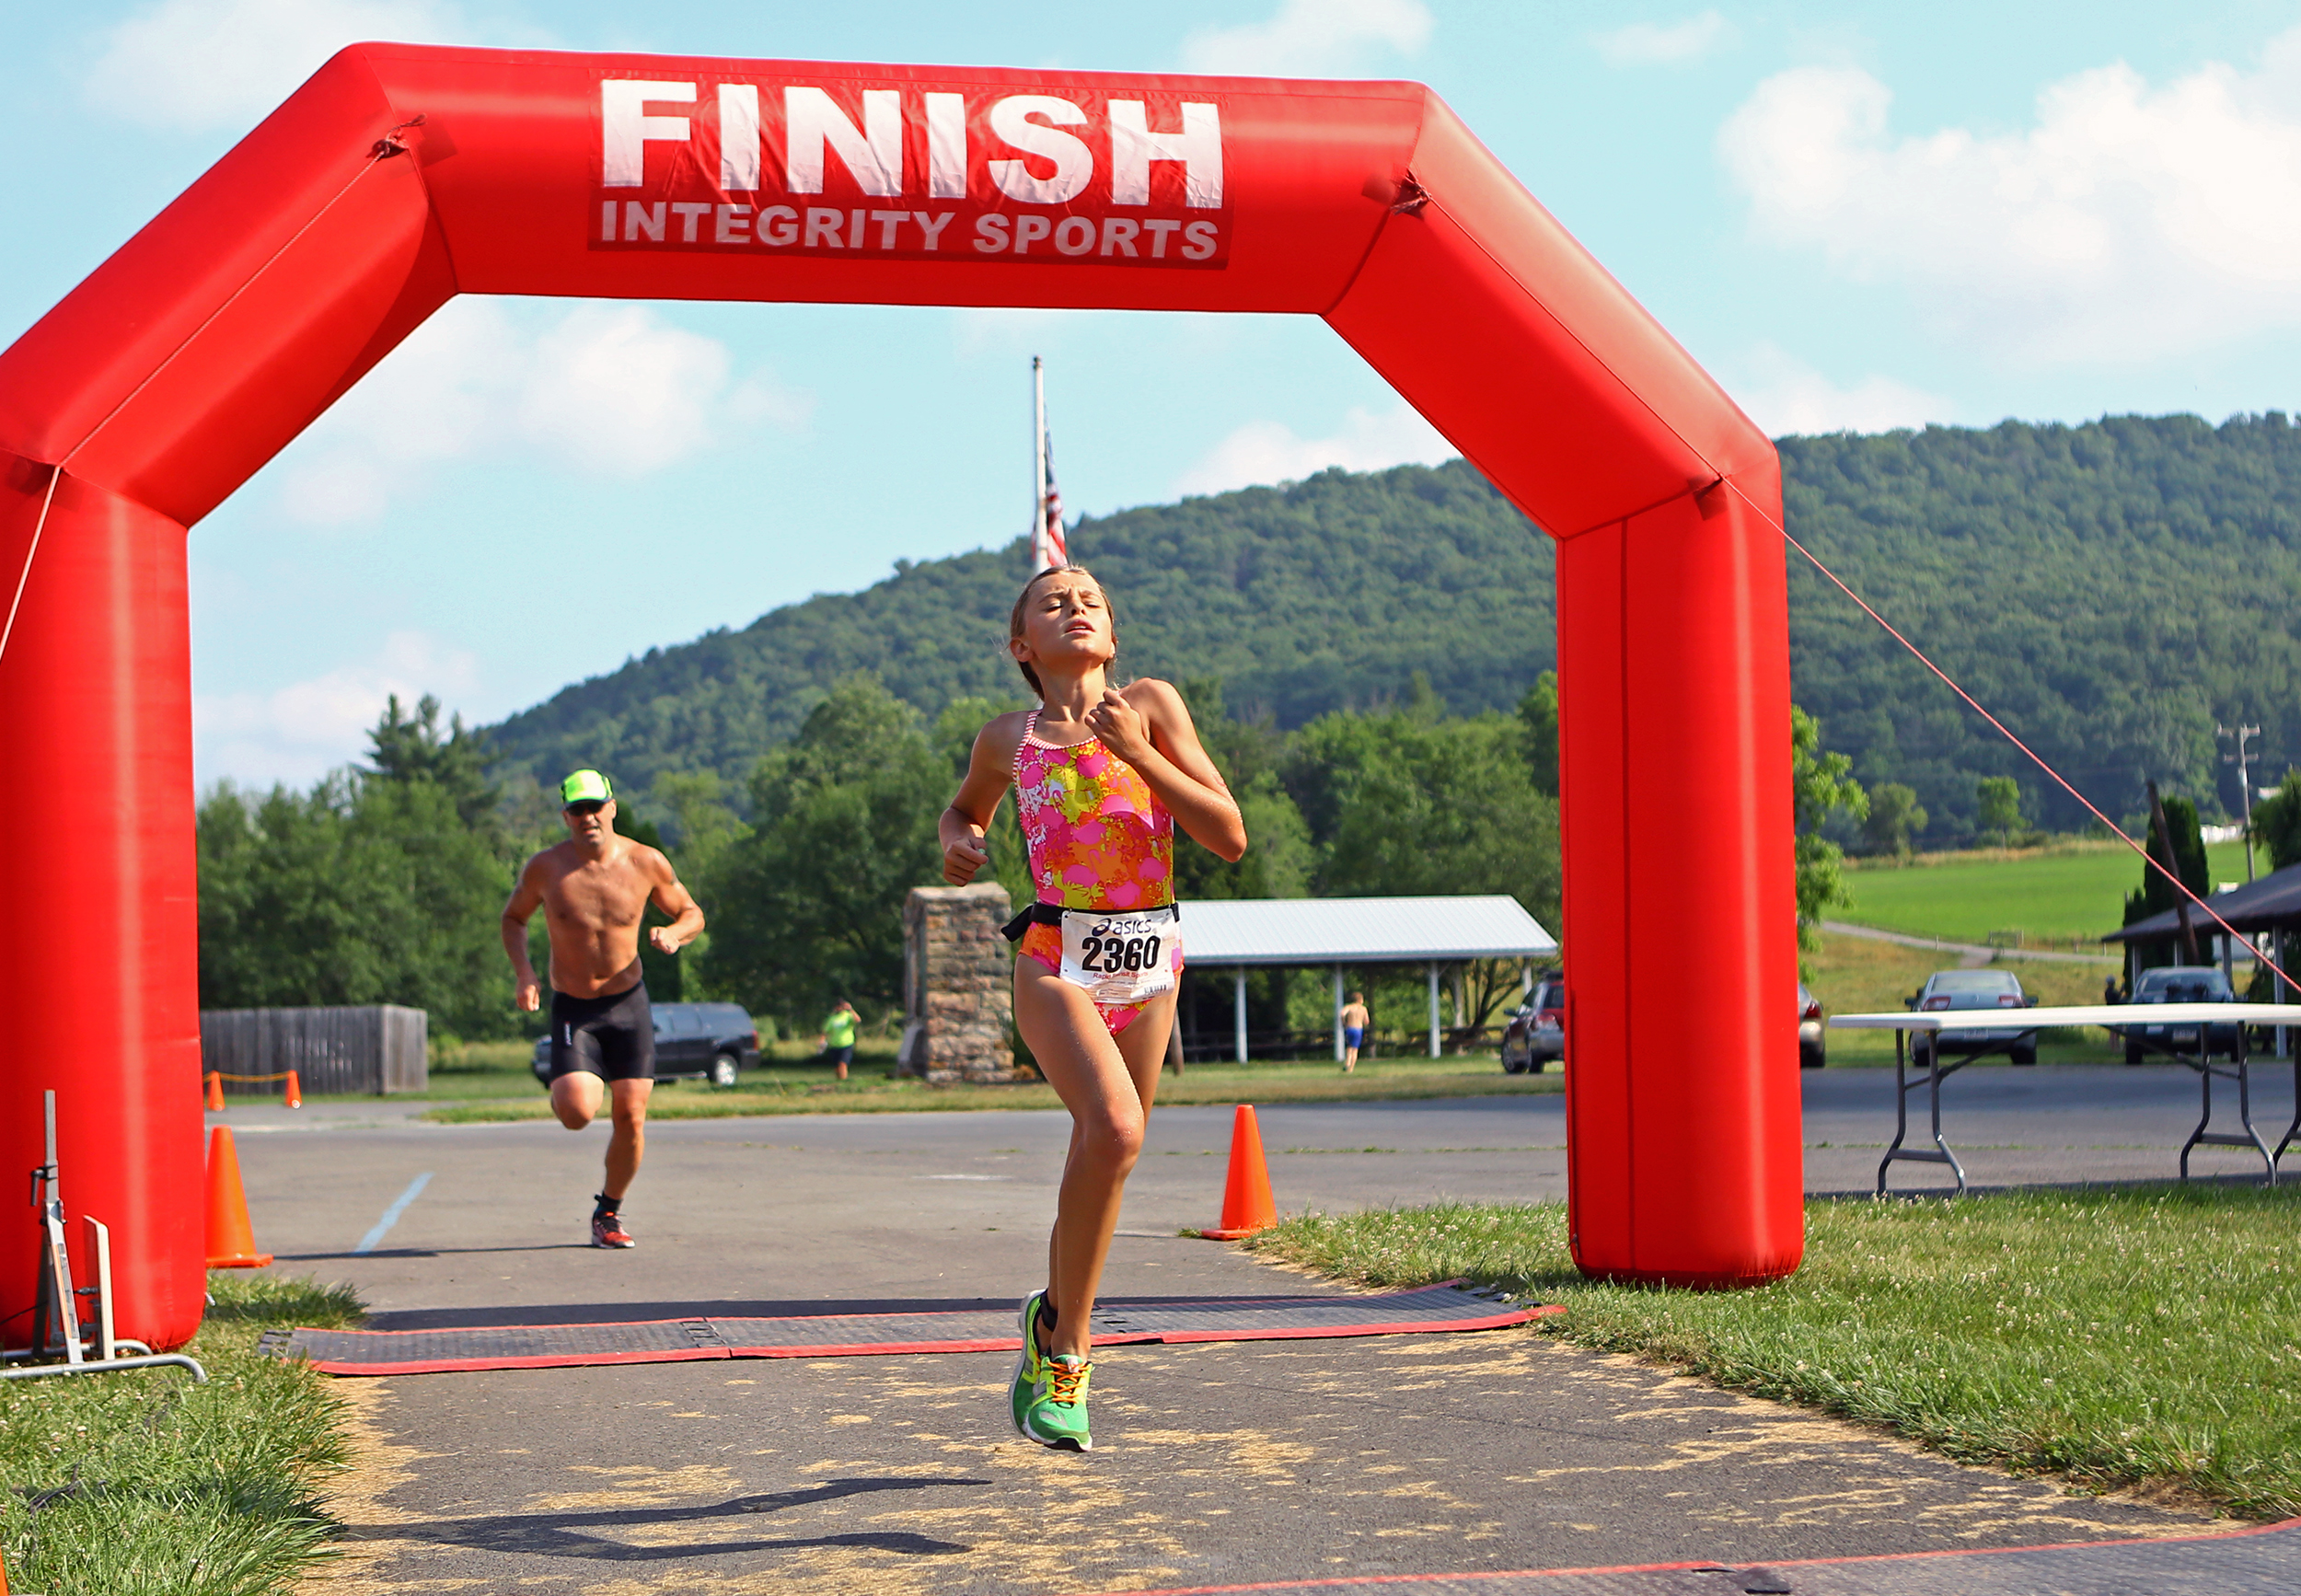 Marlee Kwasnica of State College crosses the finish line at Millheim Pool to complete the Millheim Pool Sprint Mini Triathlon with a time of 48:21 on Saturday, June 25, 2016.